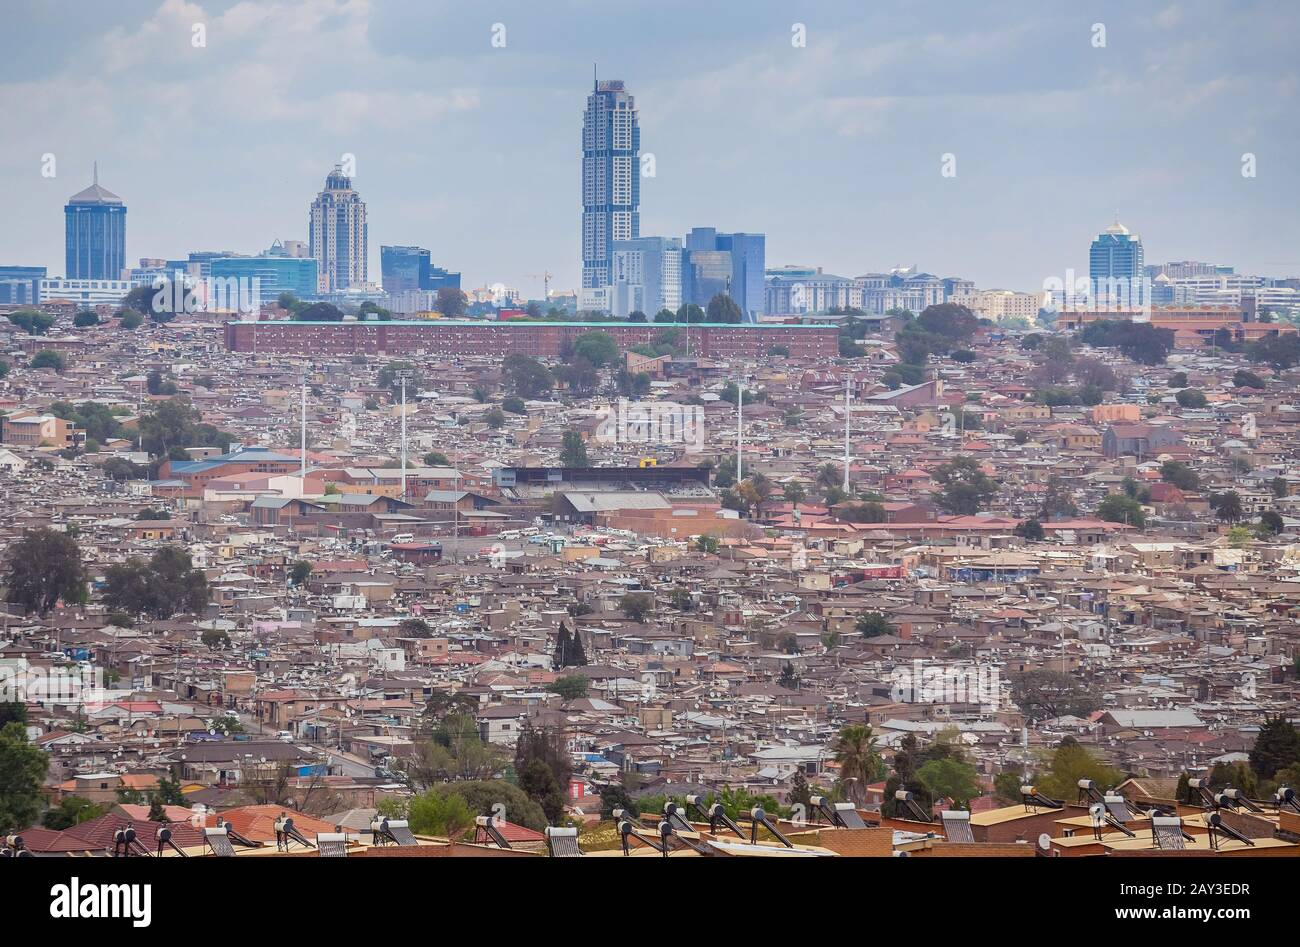 Johannesburg, South Africa, 4th October - 2019: View over Alexander township towards Sandton. Stock Photo